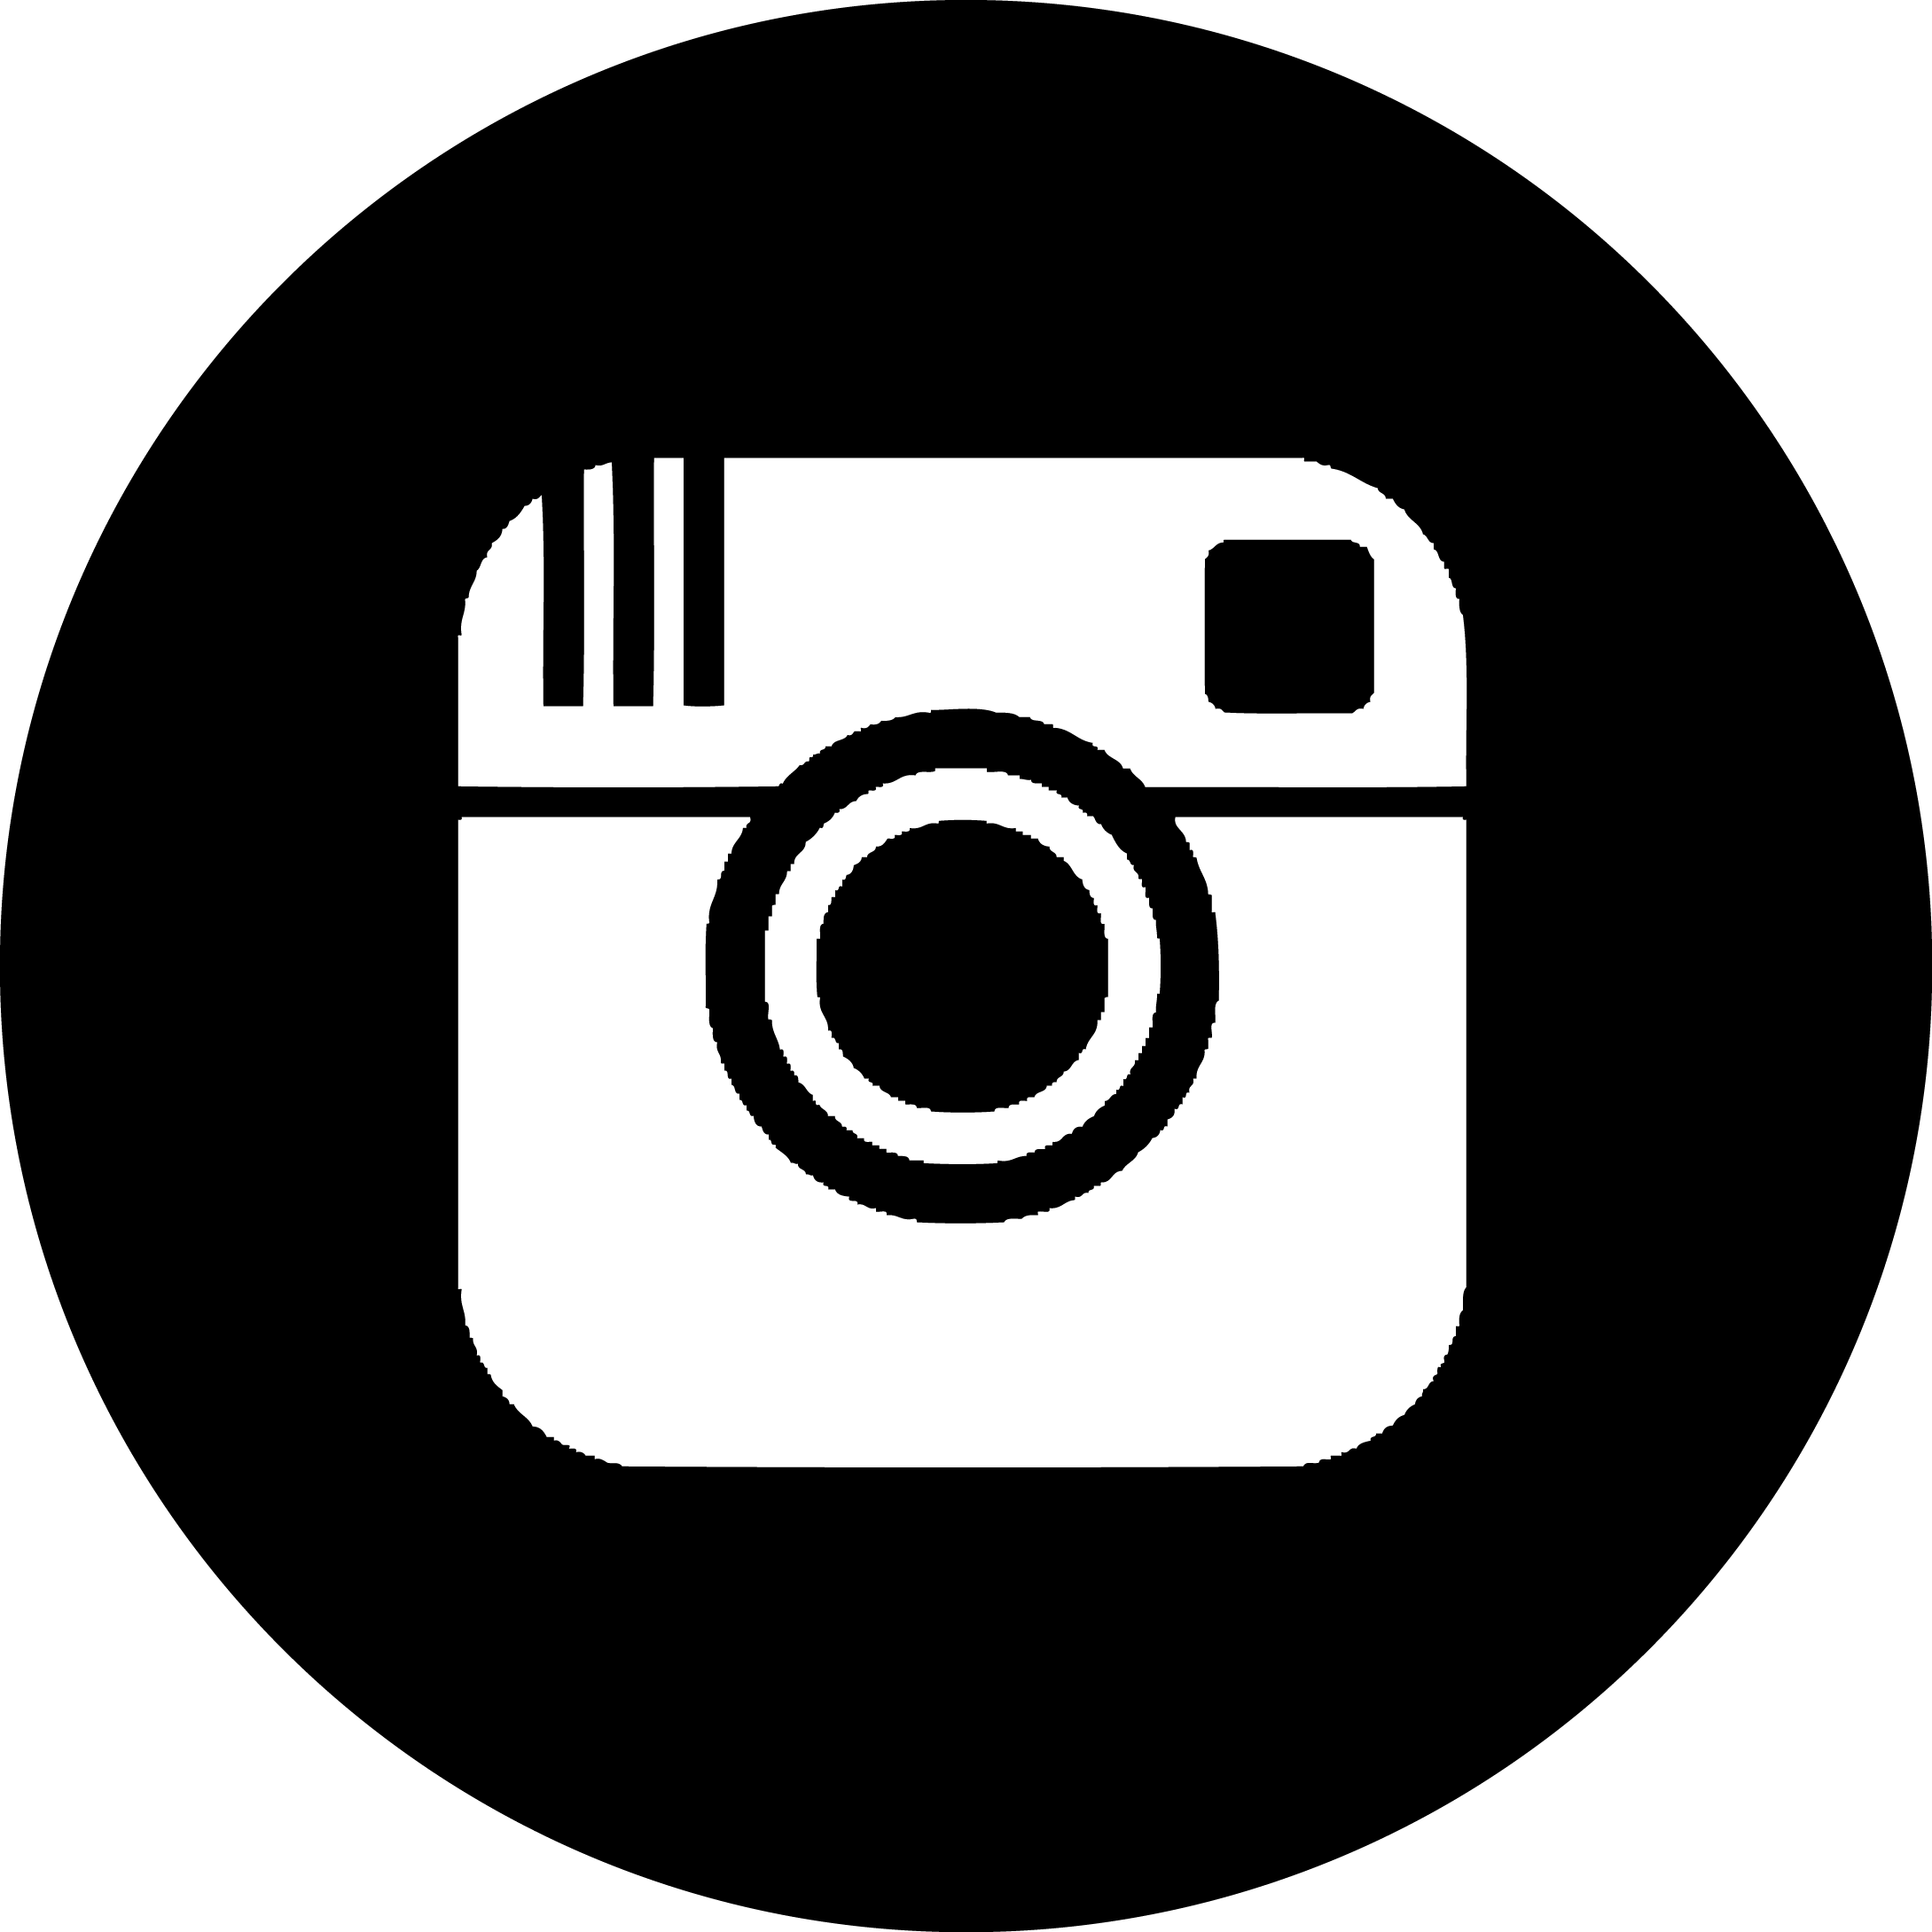 instagramicon